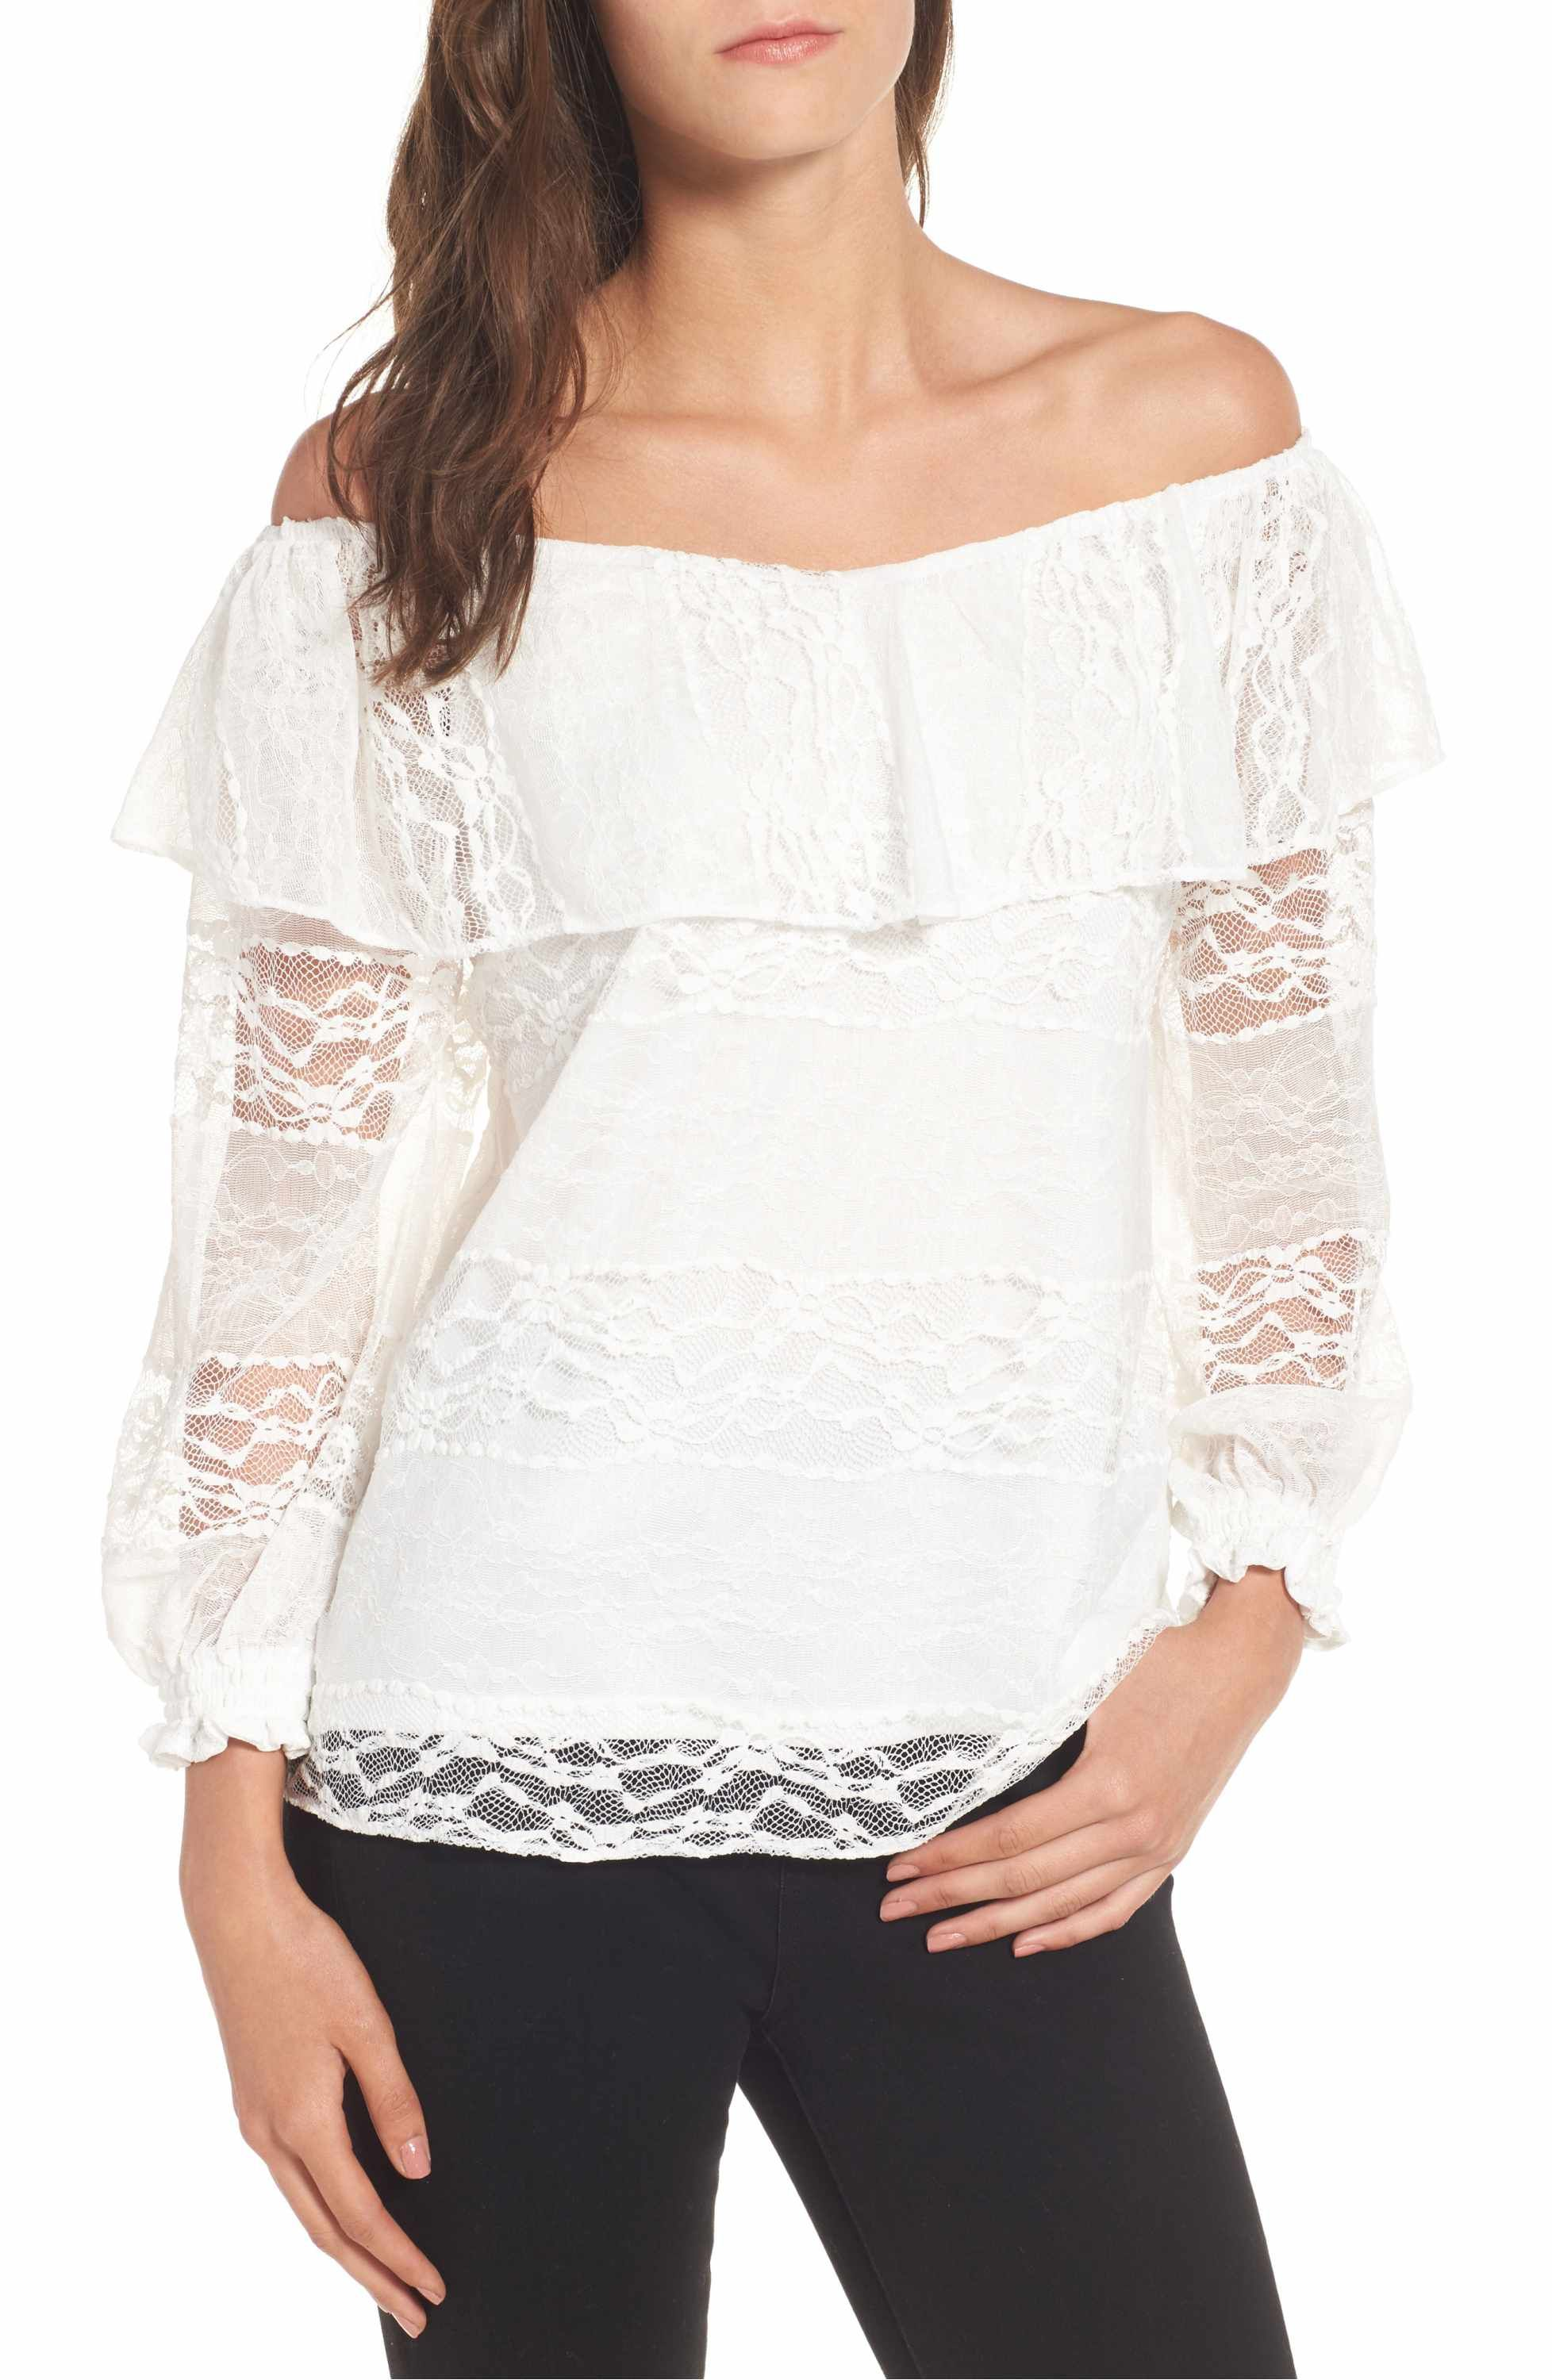 c255926bc6b36 Main Image - devlin Wilma Off the Shoulder Lace Blouse